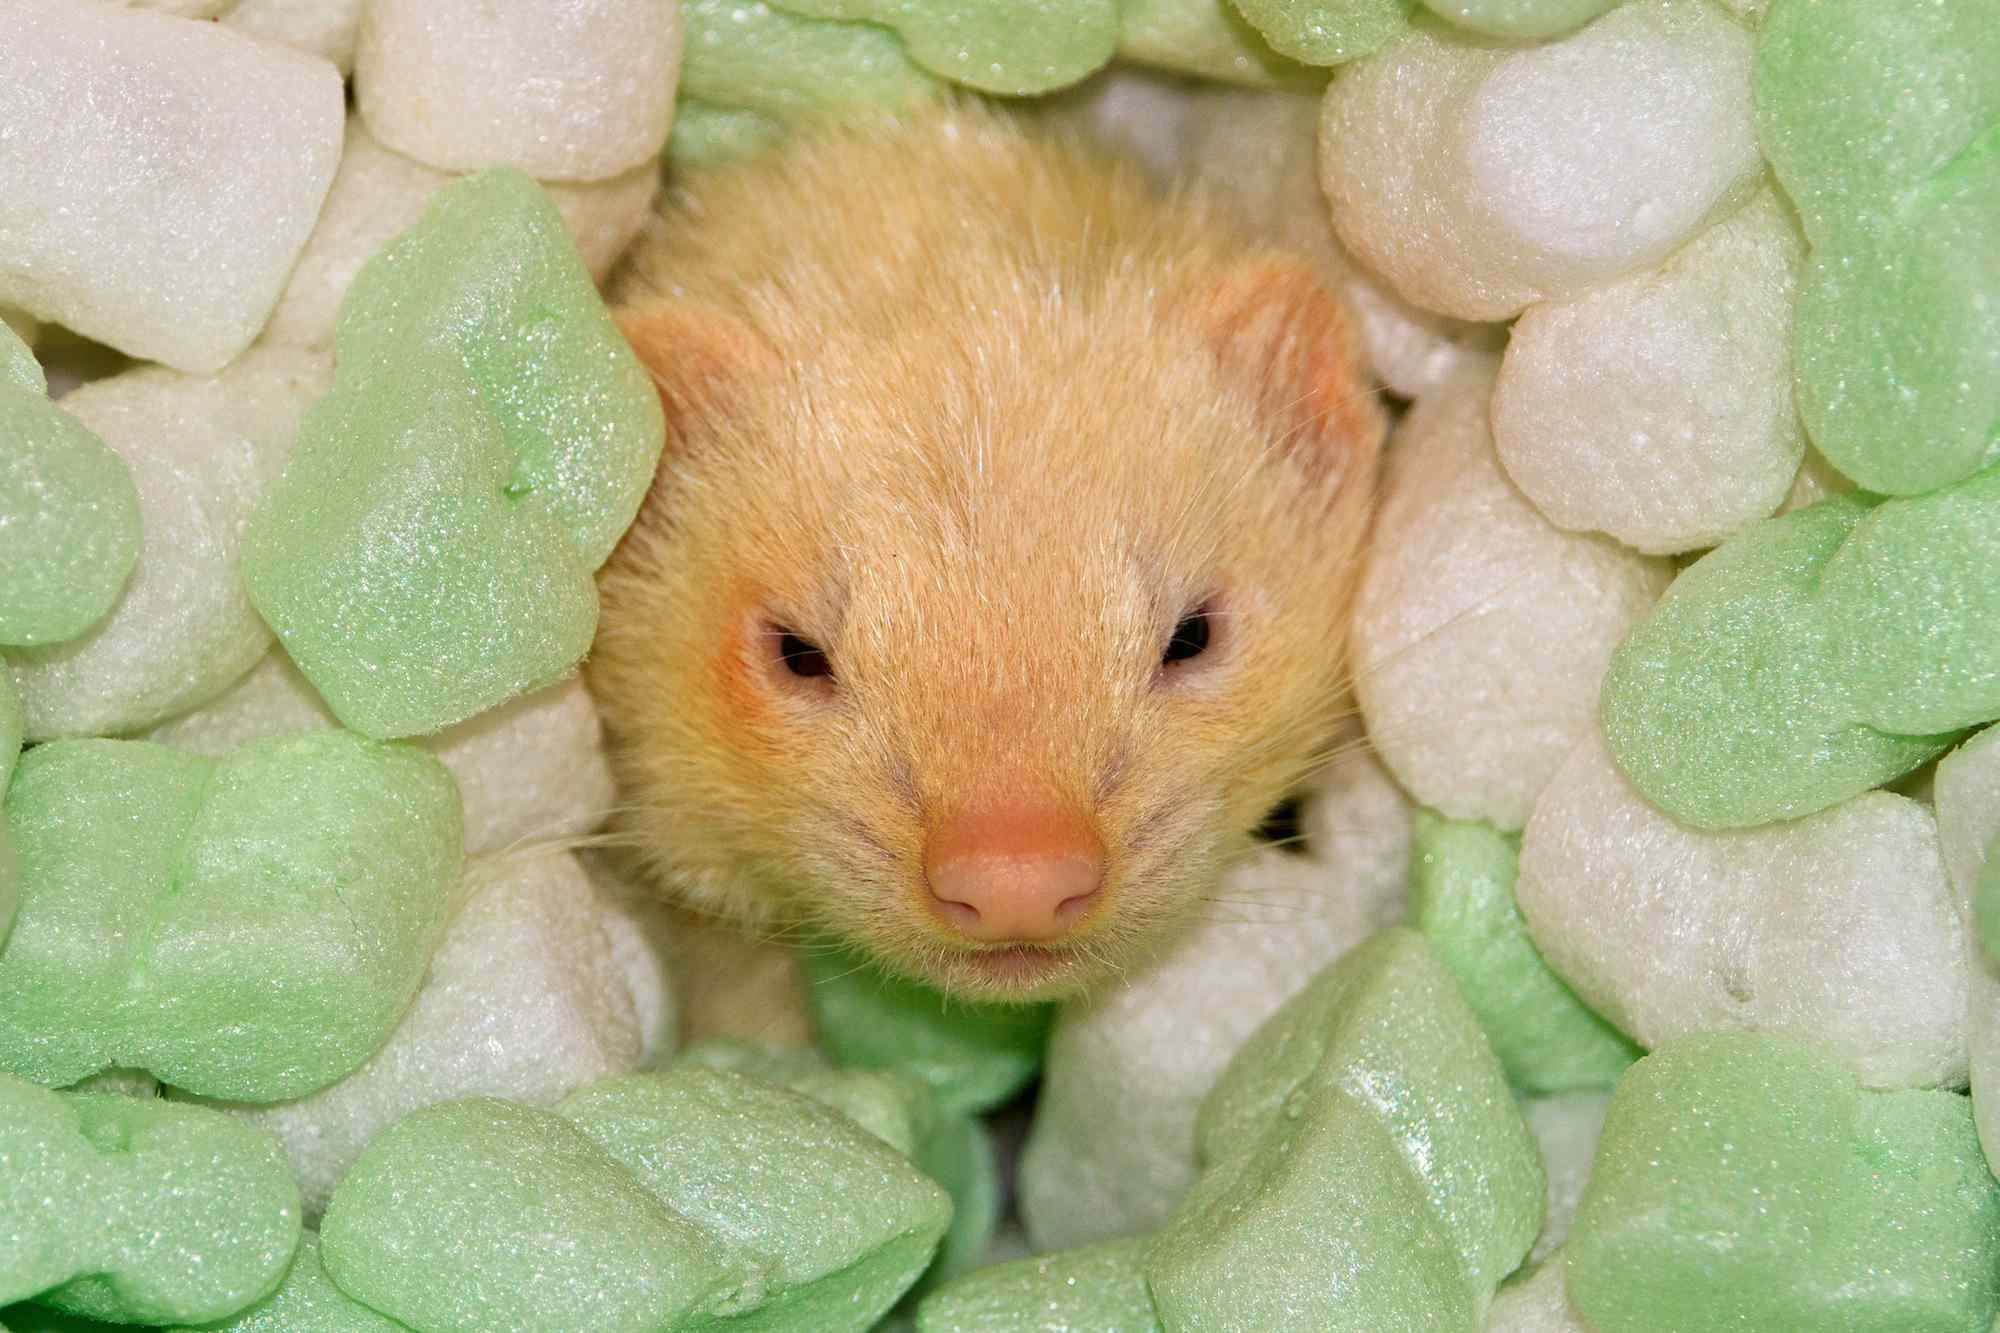 Ferret in packing peanuts